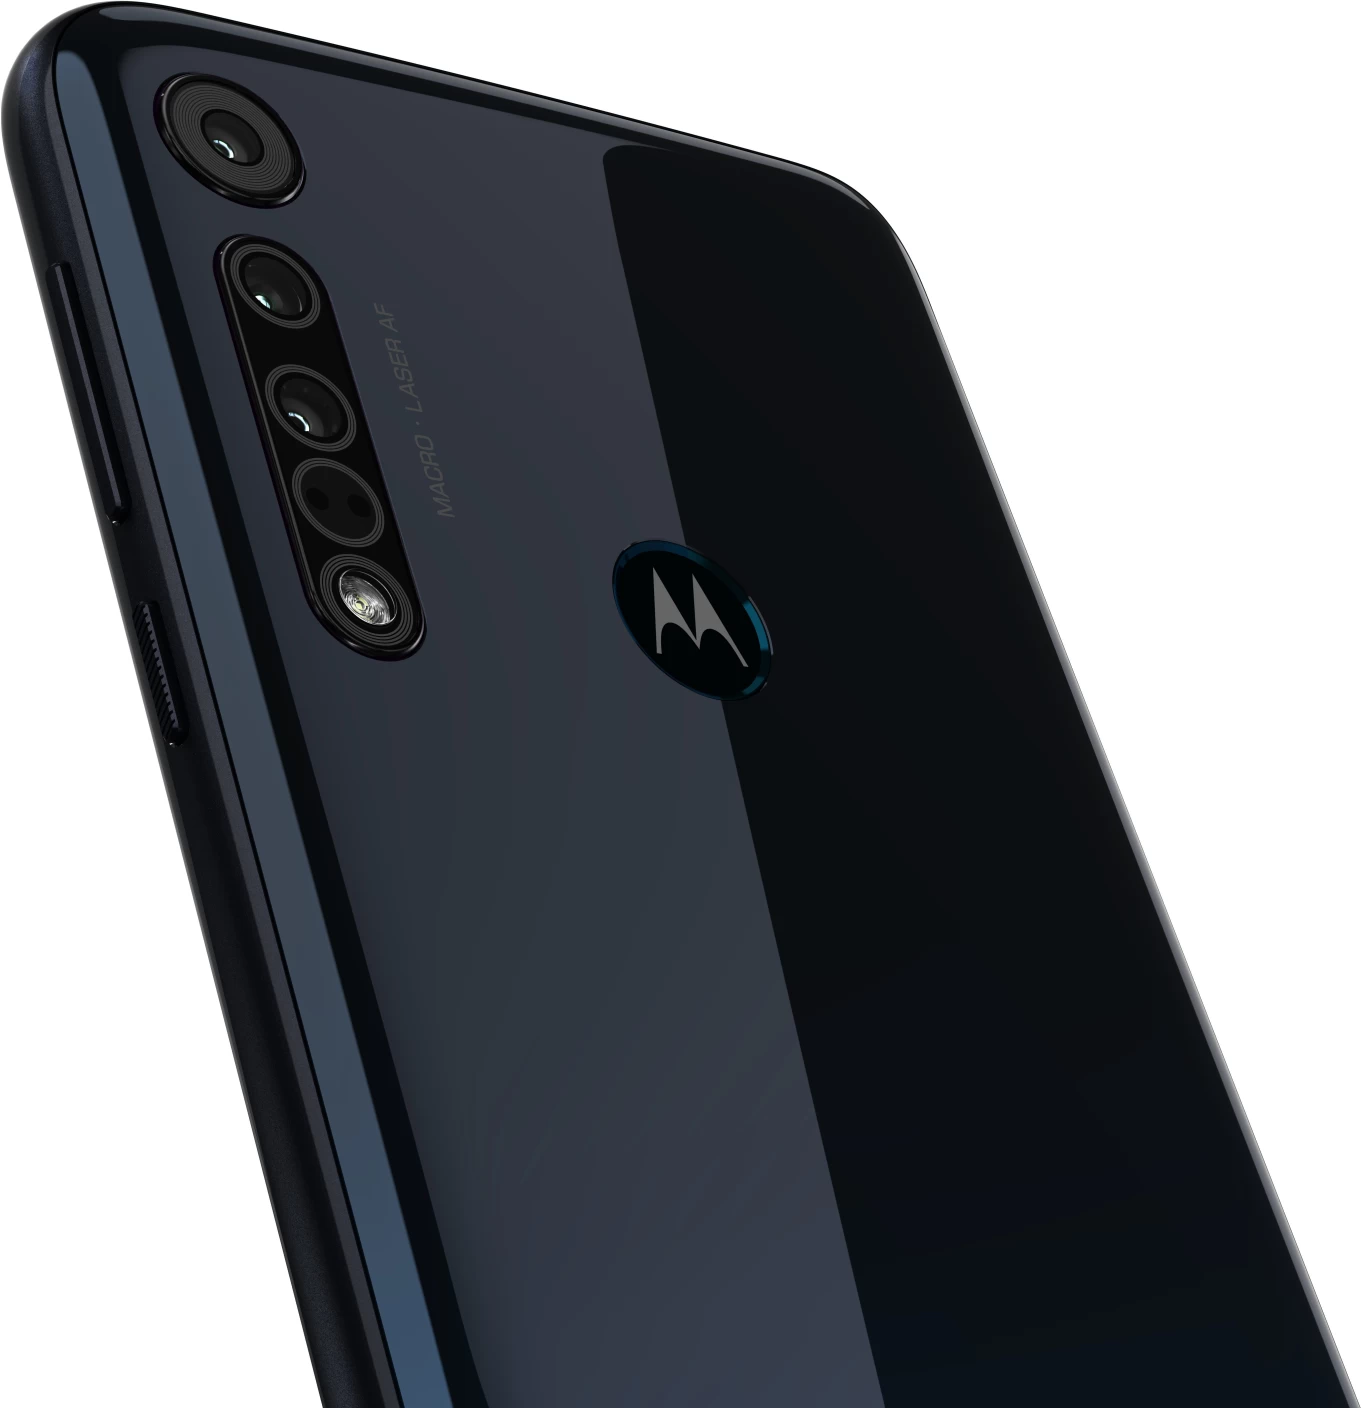 Motorola One Macro launched in India: Specifications, price, features